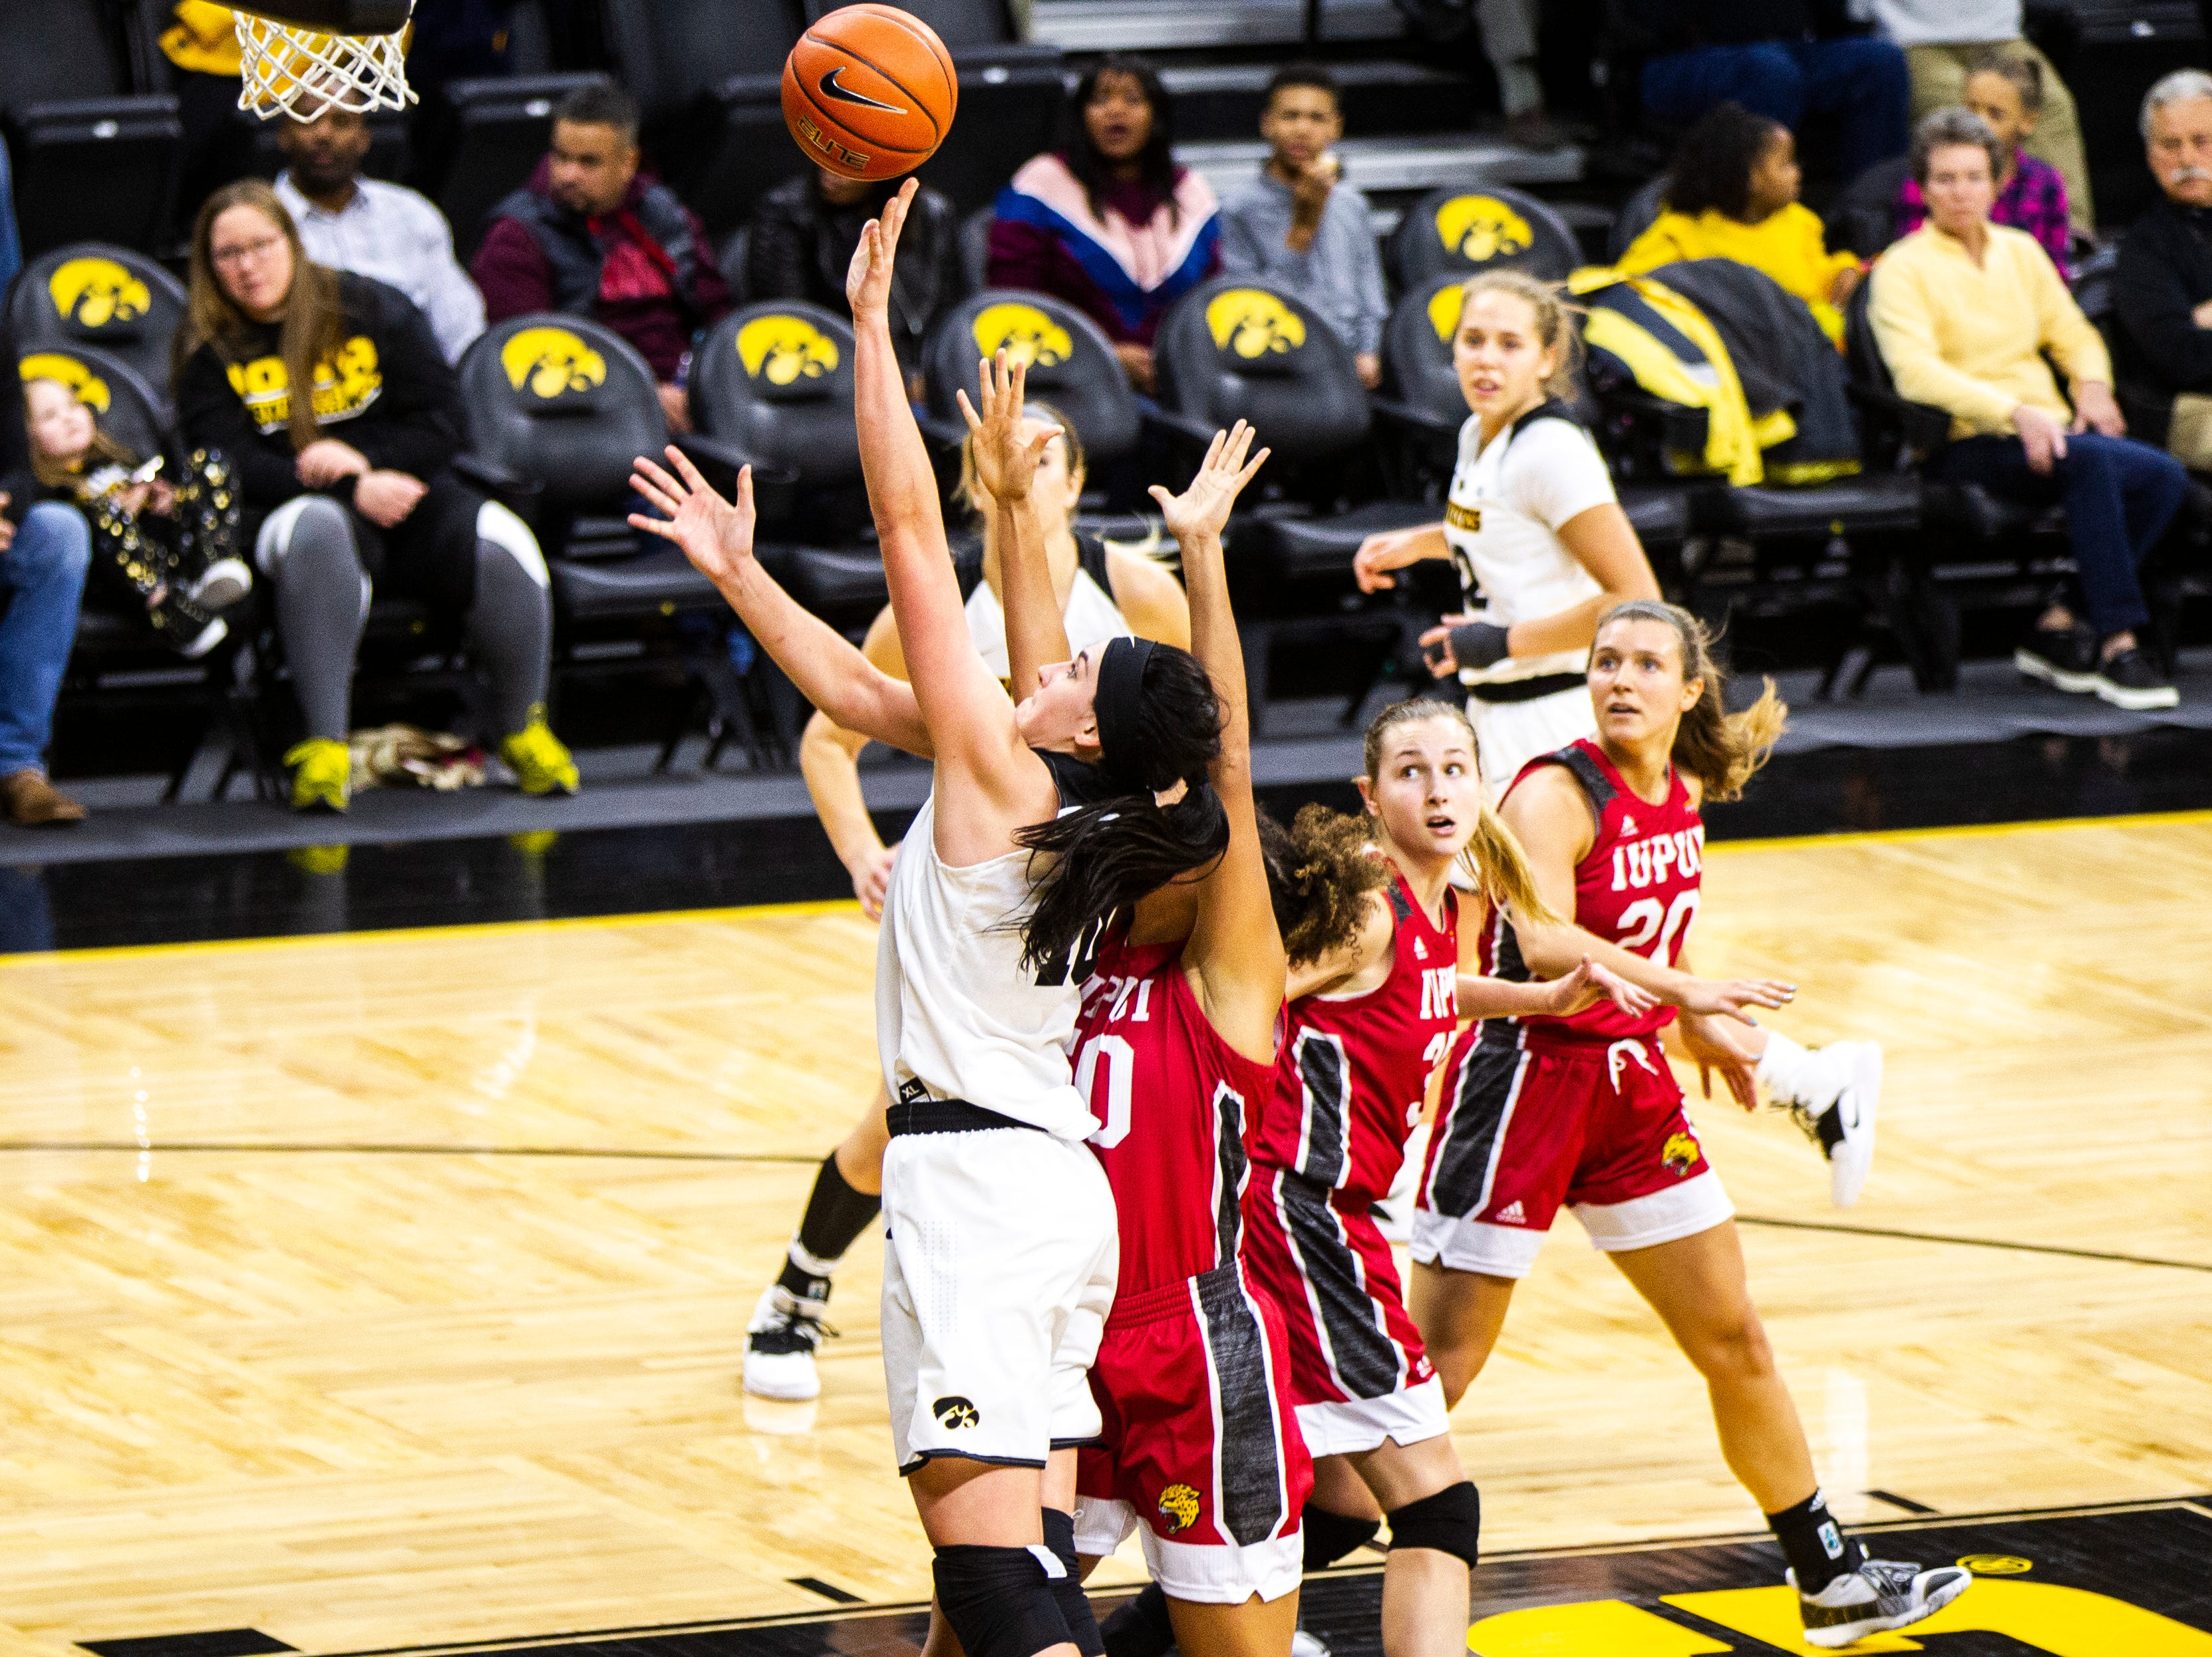 Iowa forward Megan Gustafson (10) attempts a basket during a NCAA women's basketball game on Saturday, Dec. 8, 2018, at Carver-Hawkeye Arena in Iowa City.